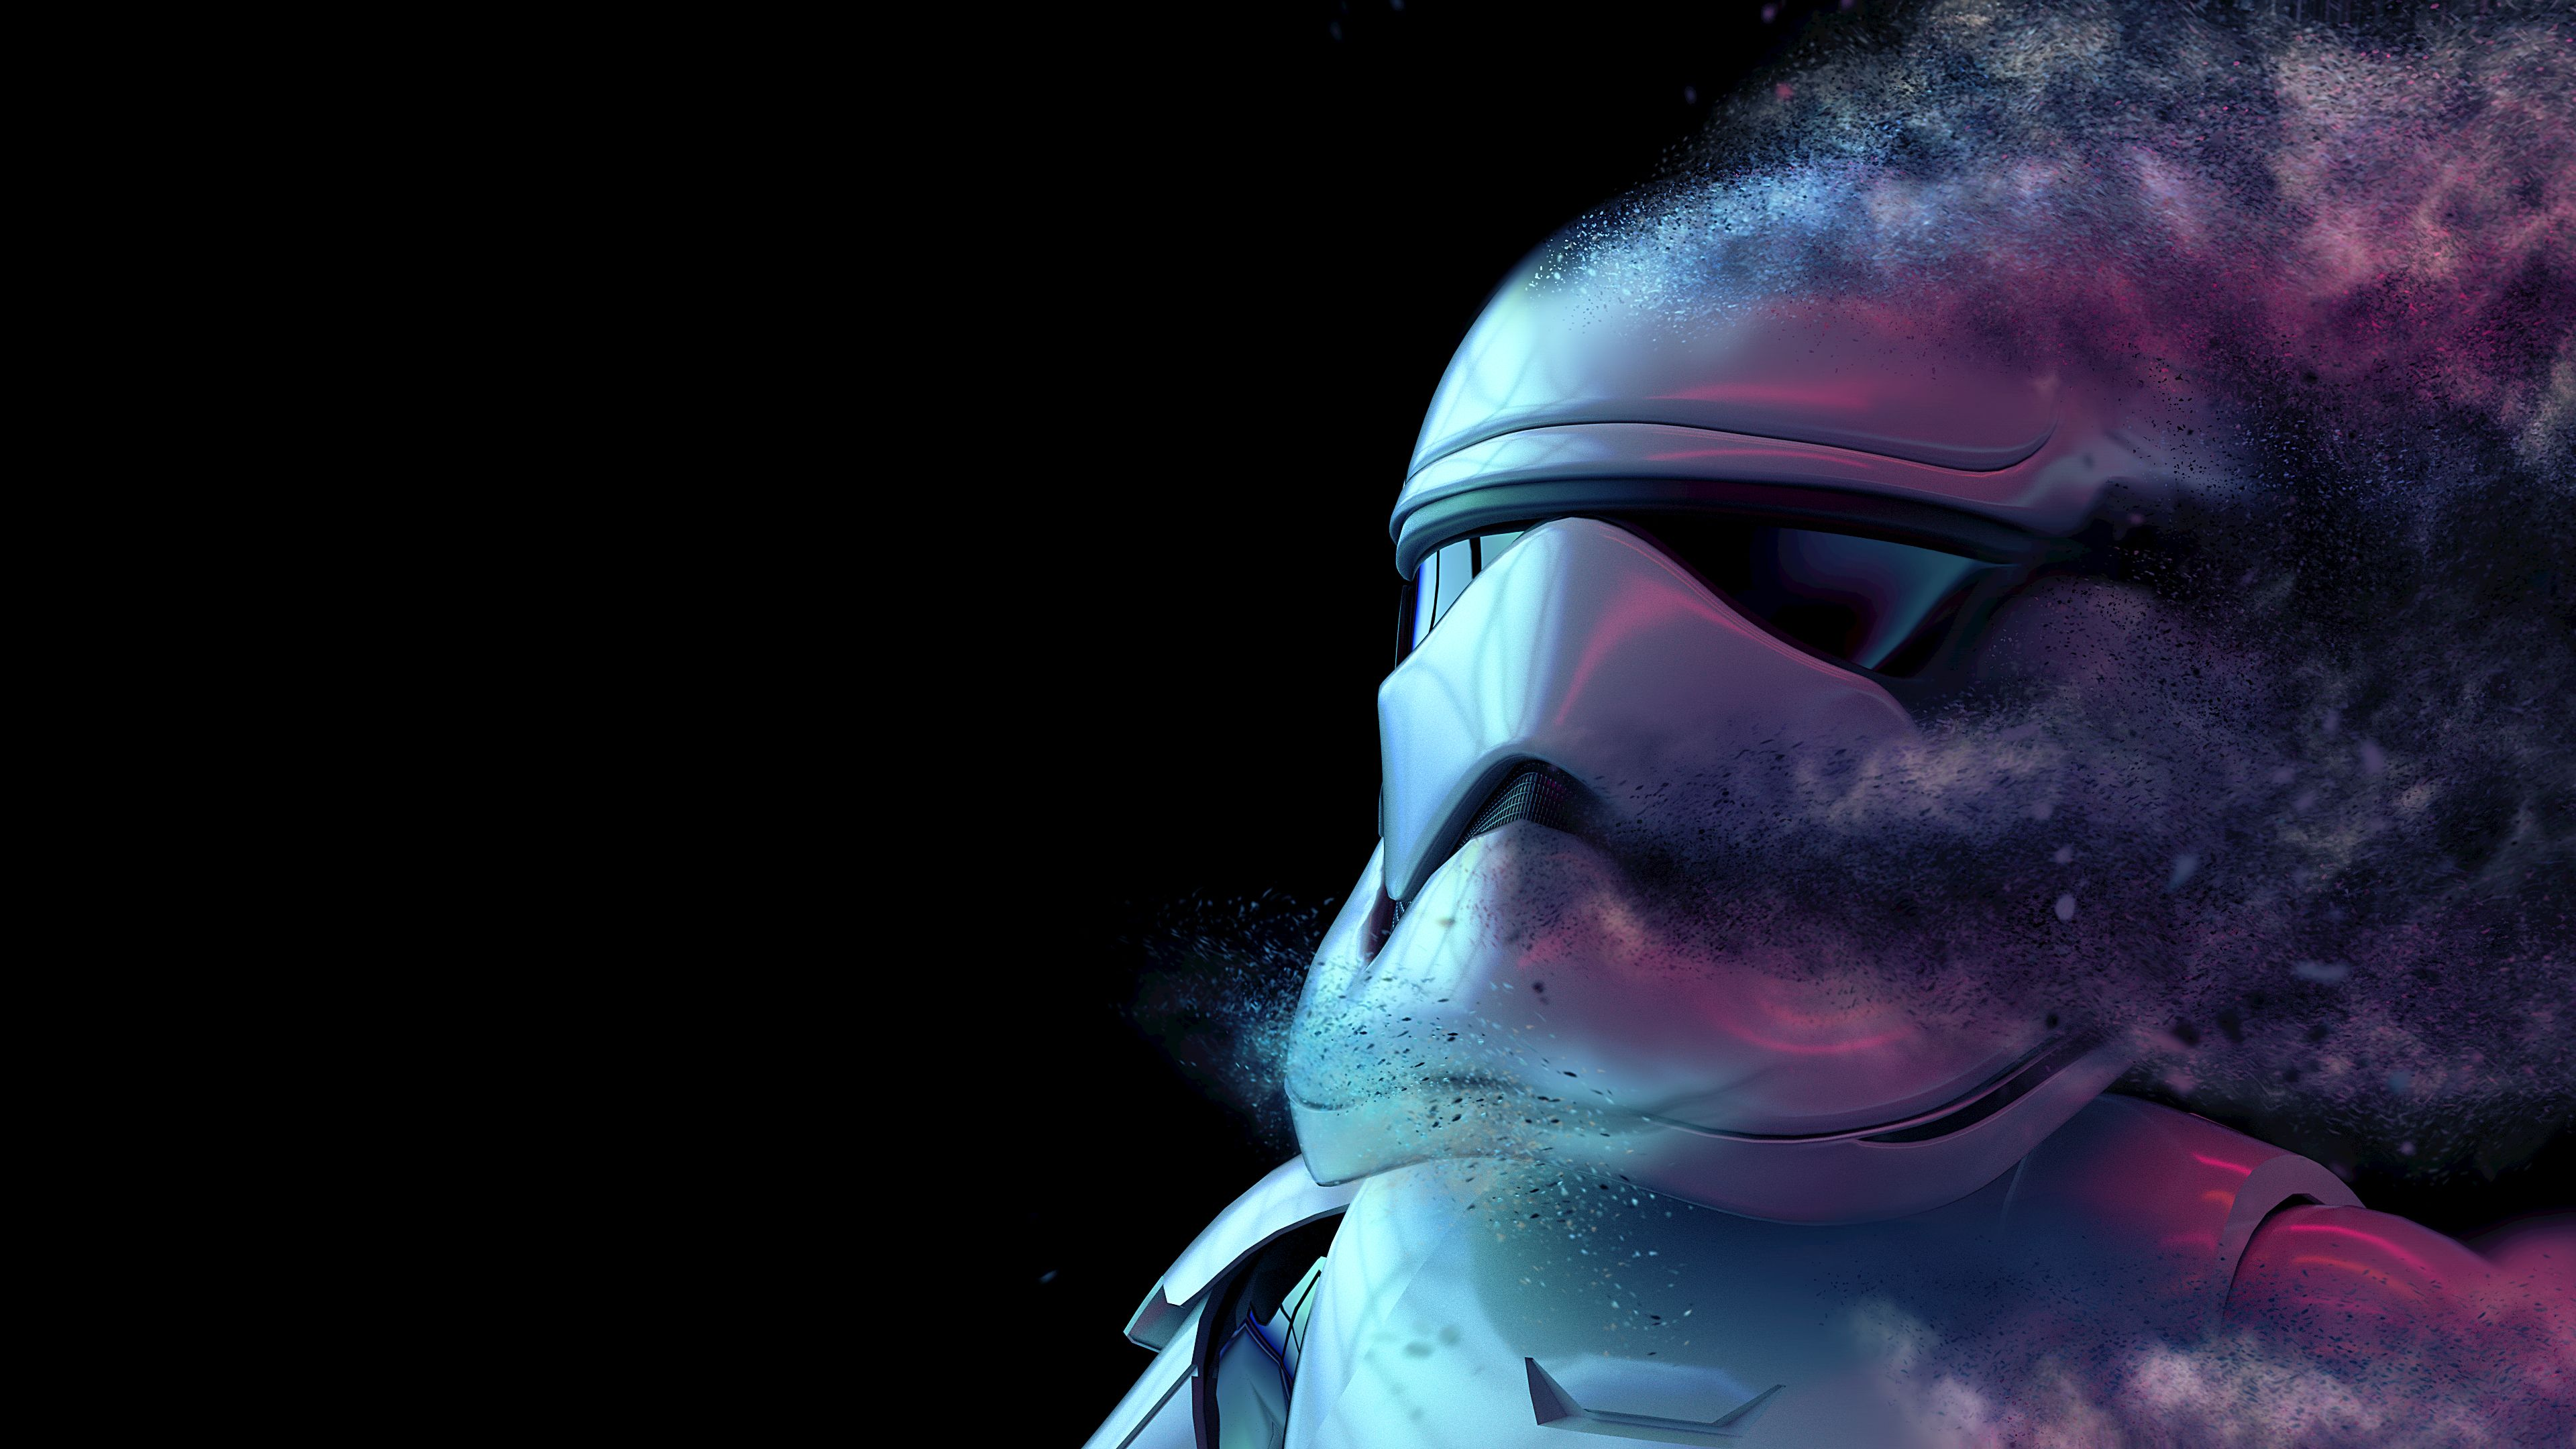 Storm Trooper Digital Art 4k Star Wars Wallpaper Stormtrooper Landscape Wallpaper